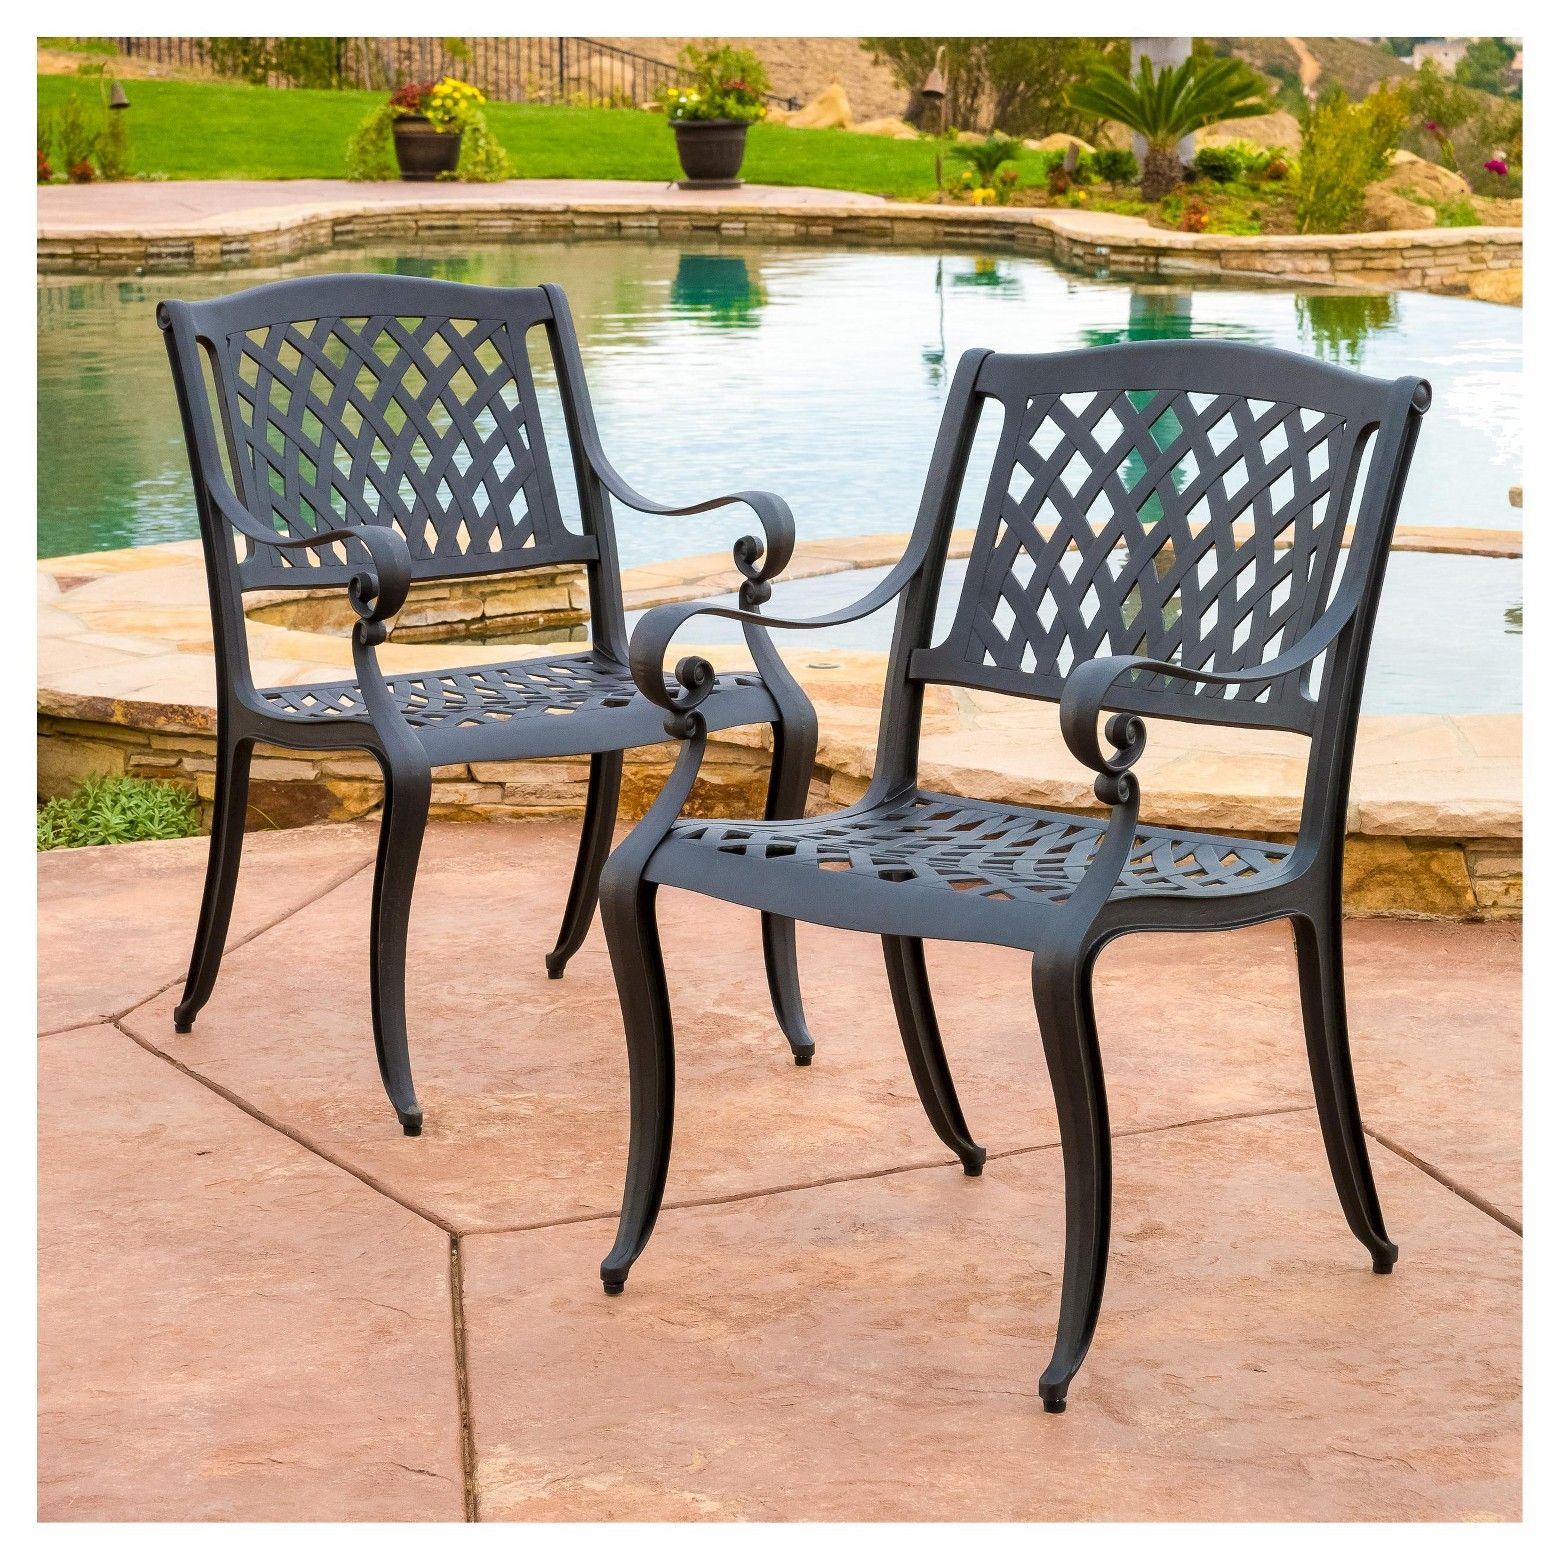 Patio Furniture Hallandale Fl: Hallandale Set Of 2 Cast Aluminum Patio Chairs